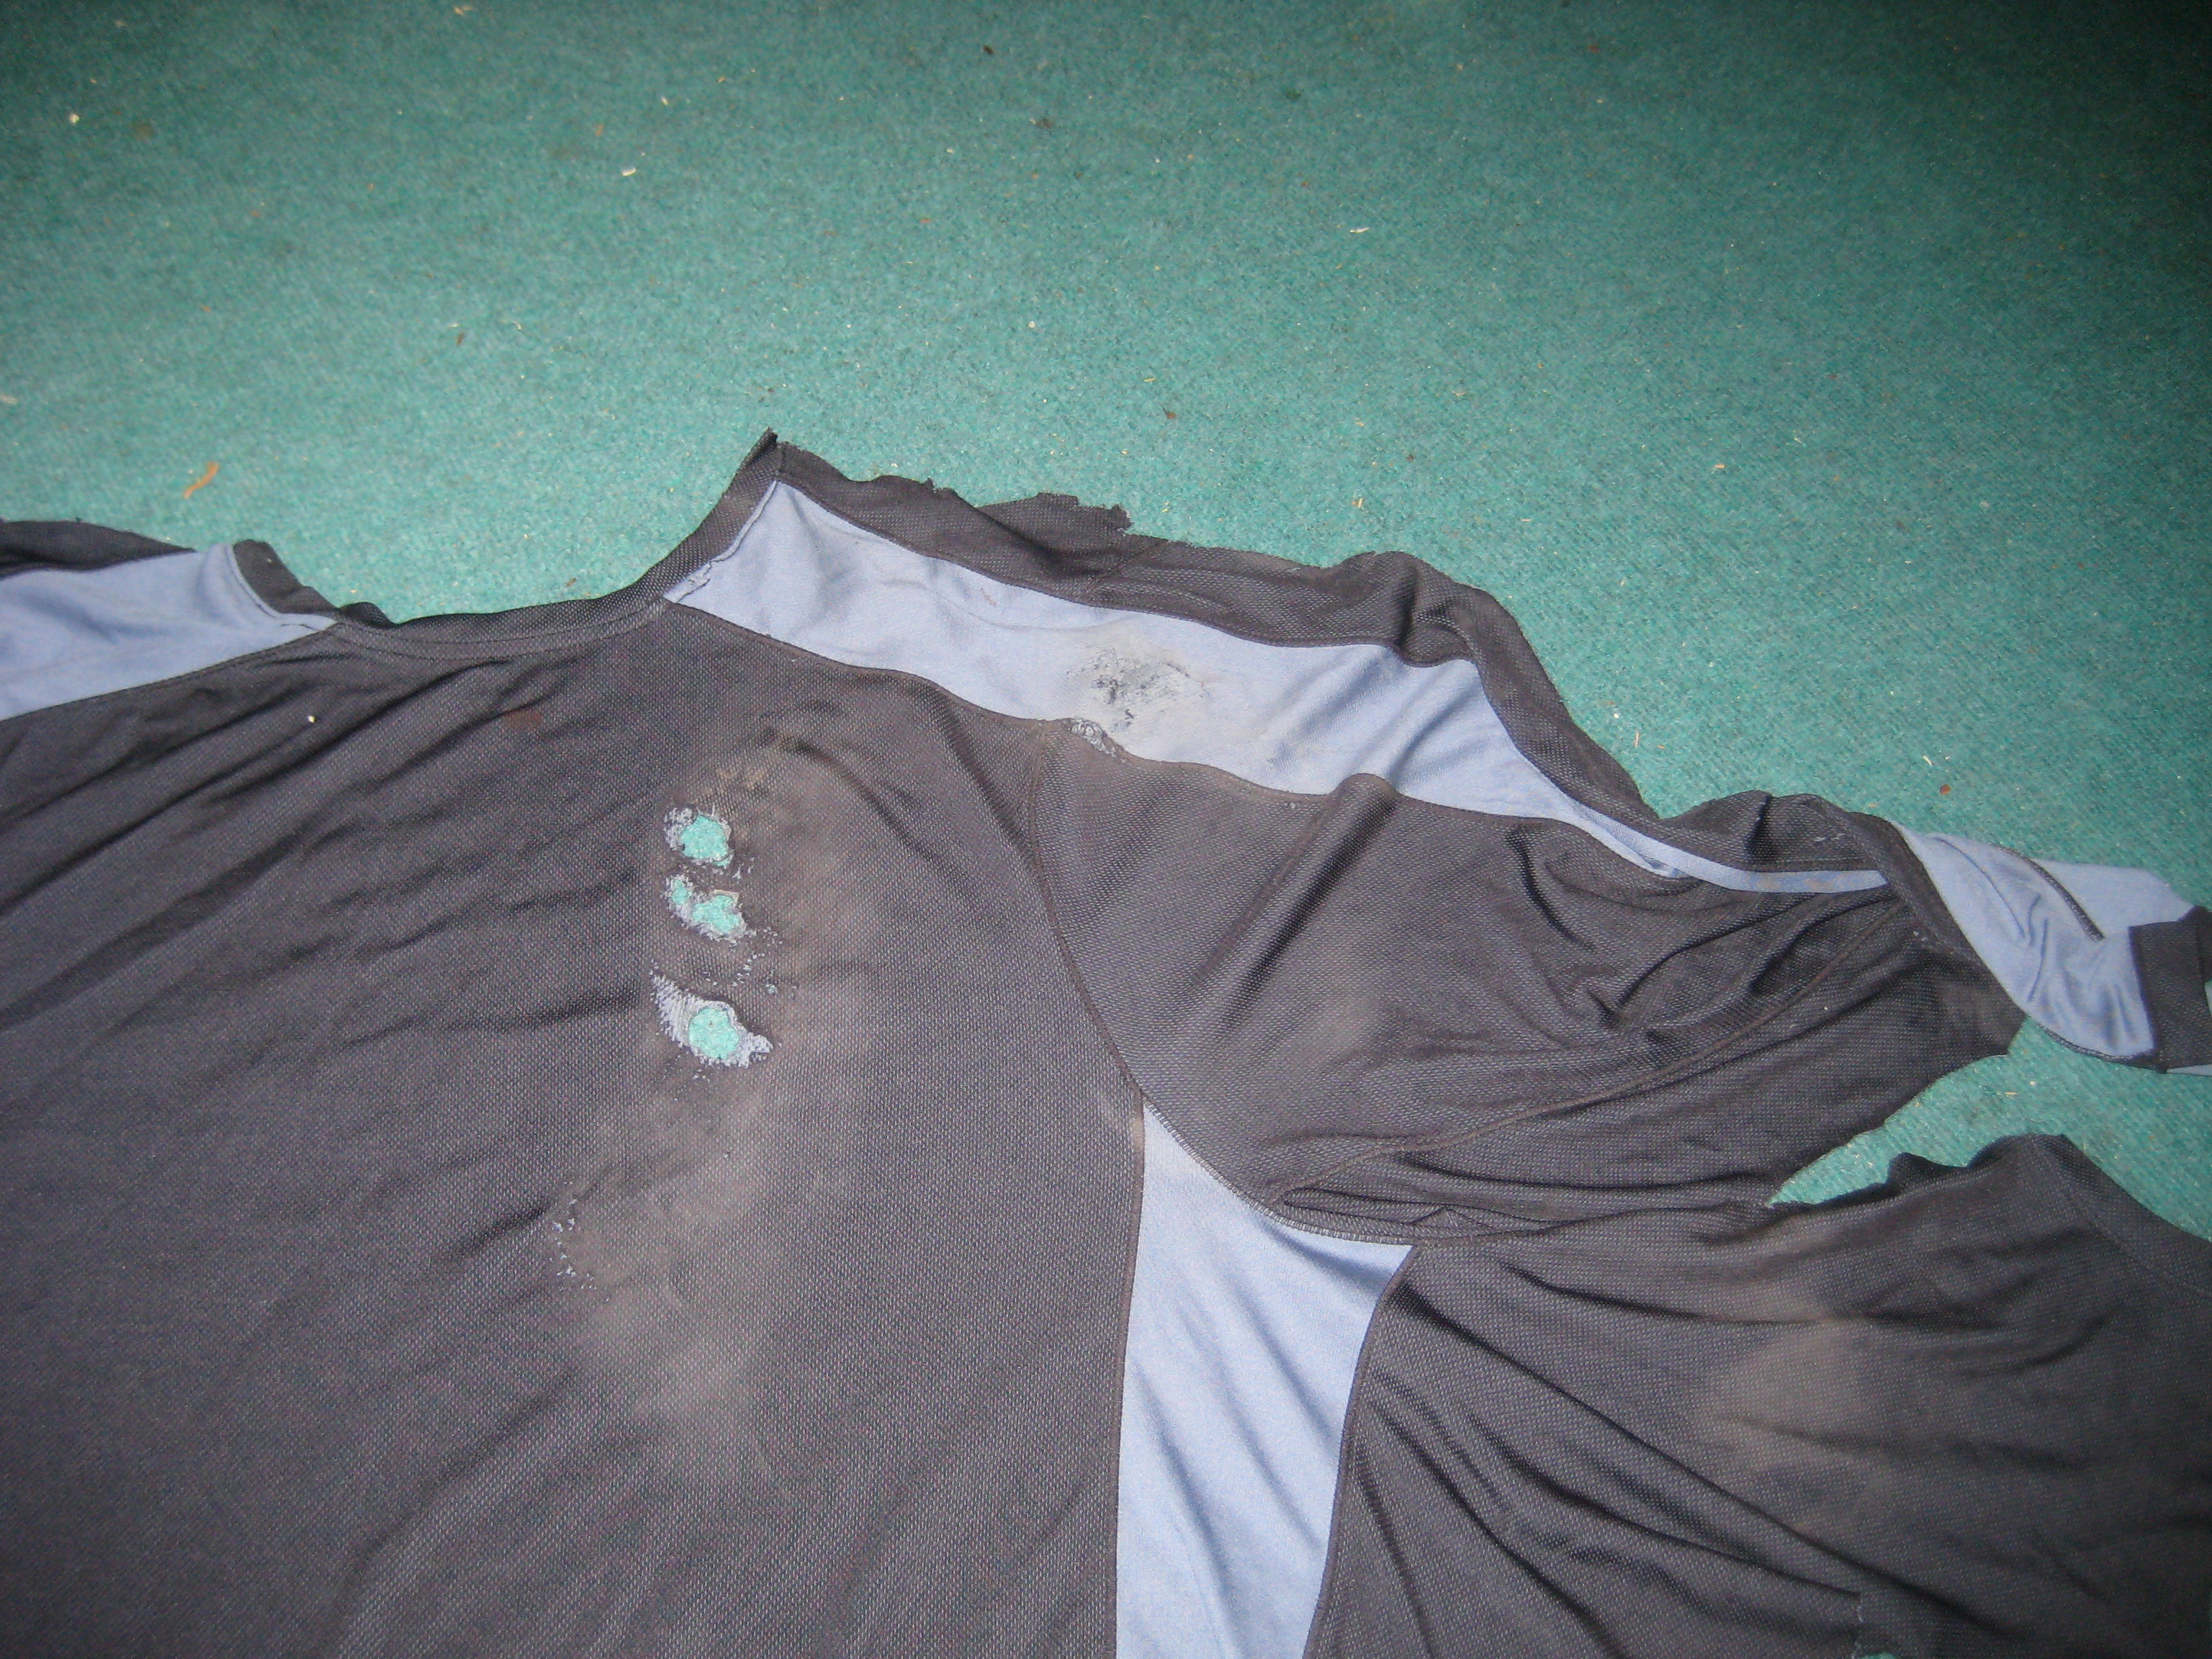 The shirt I was wearing at the time of my accident.